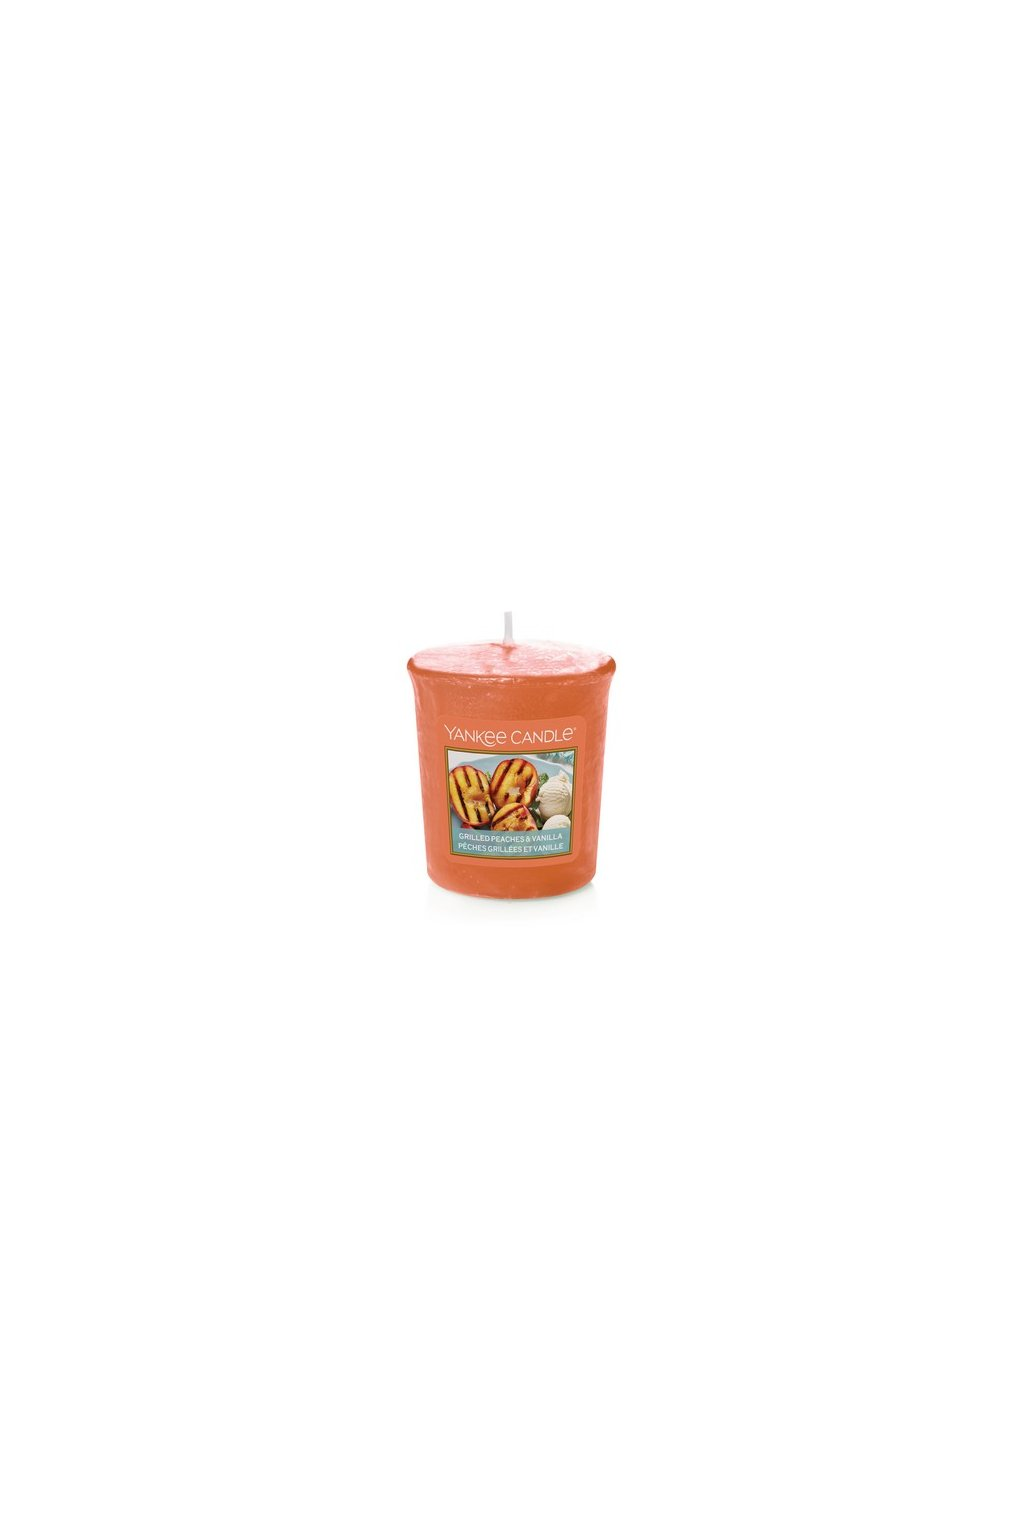 Yankee Candle Grilled Peaches & Vanila 49g